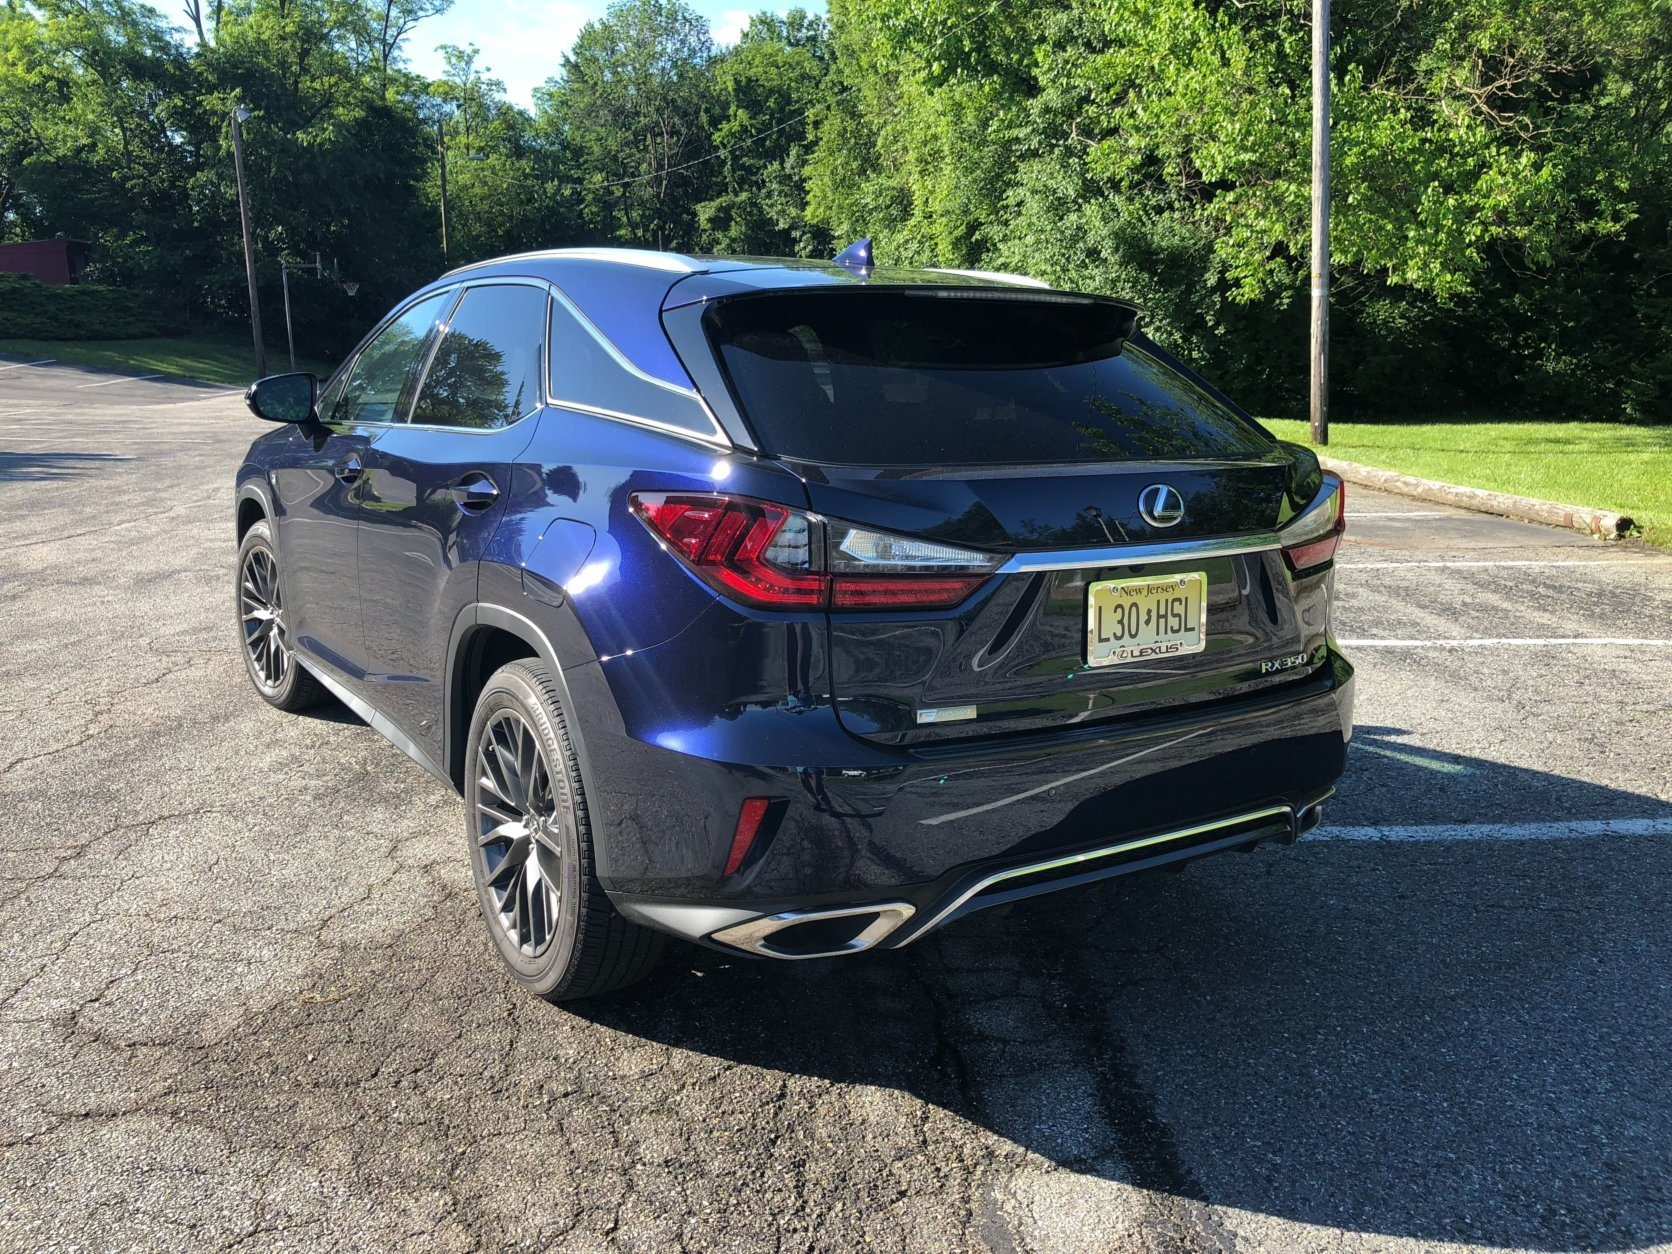 <p>The smaller RX 350 with the F Sport package seems to be a bit quicker than its stretched out counterpart.</p> <p>Dual exhaust outlets add some visual punch.</p>